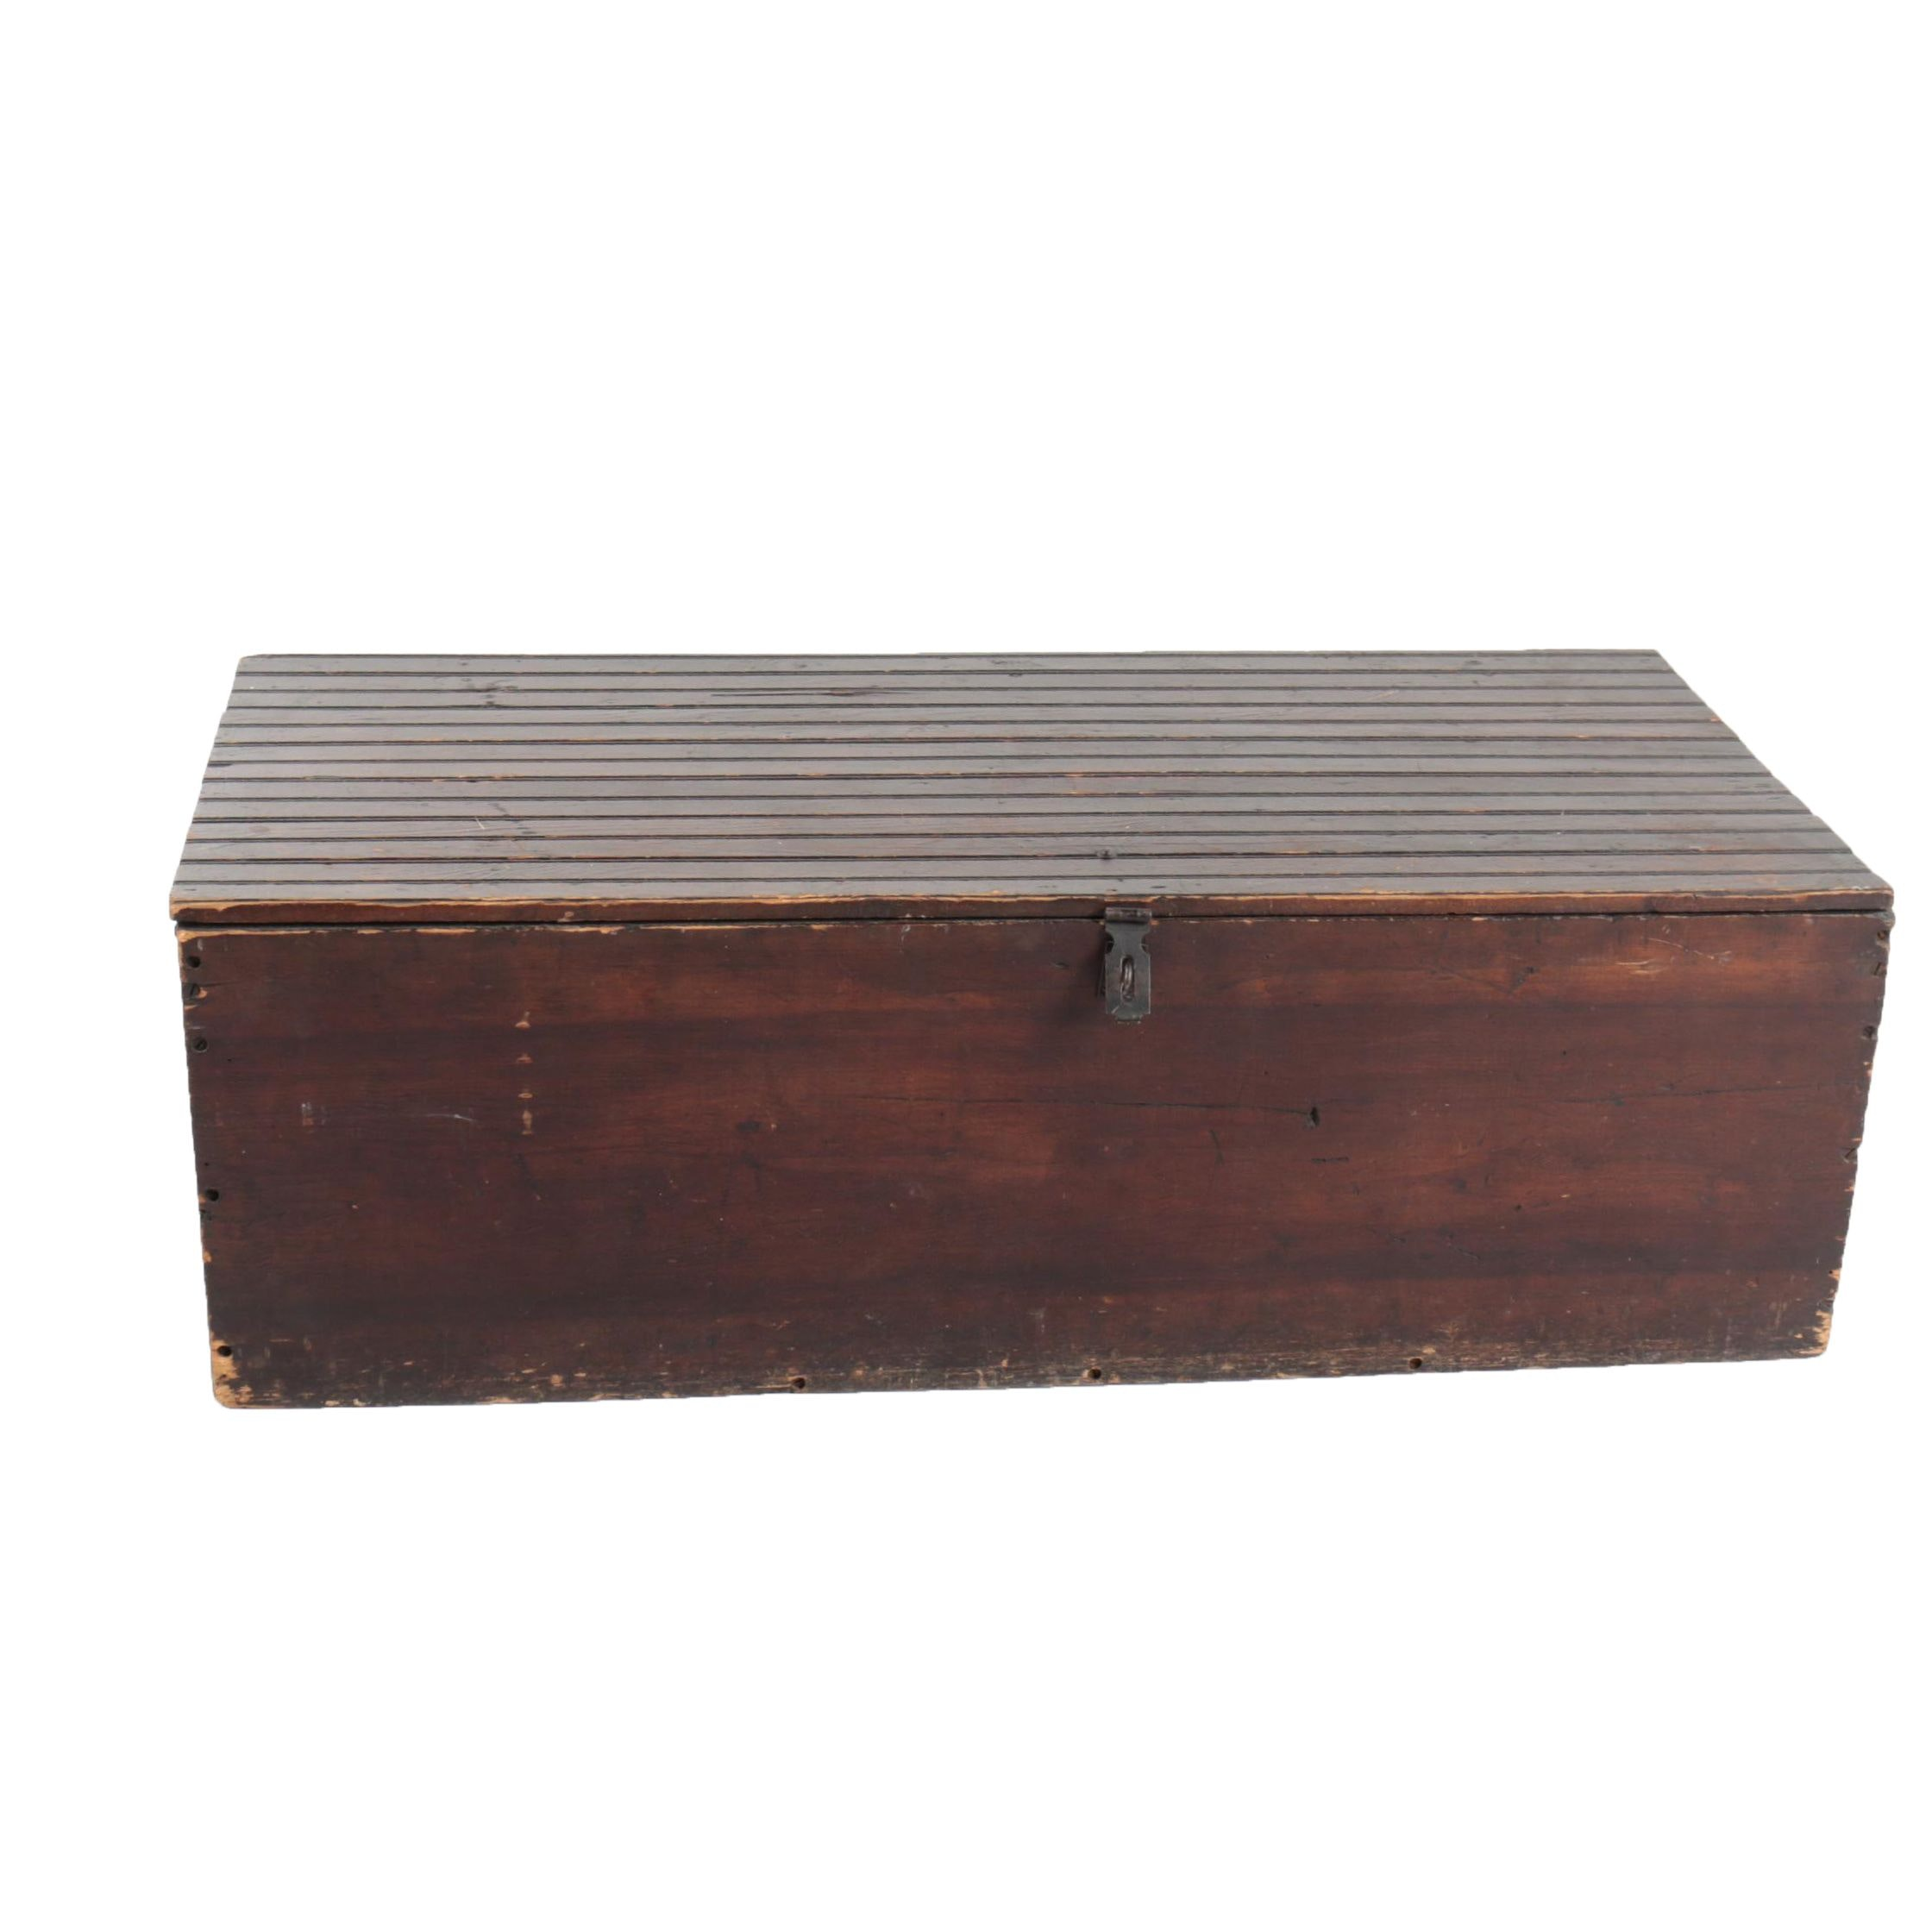 Antique Wooden Beadboard Trunk